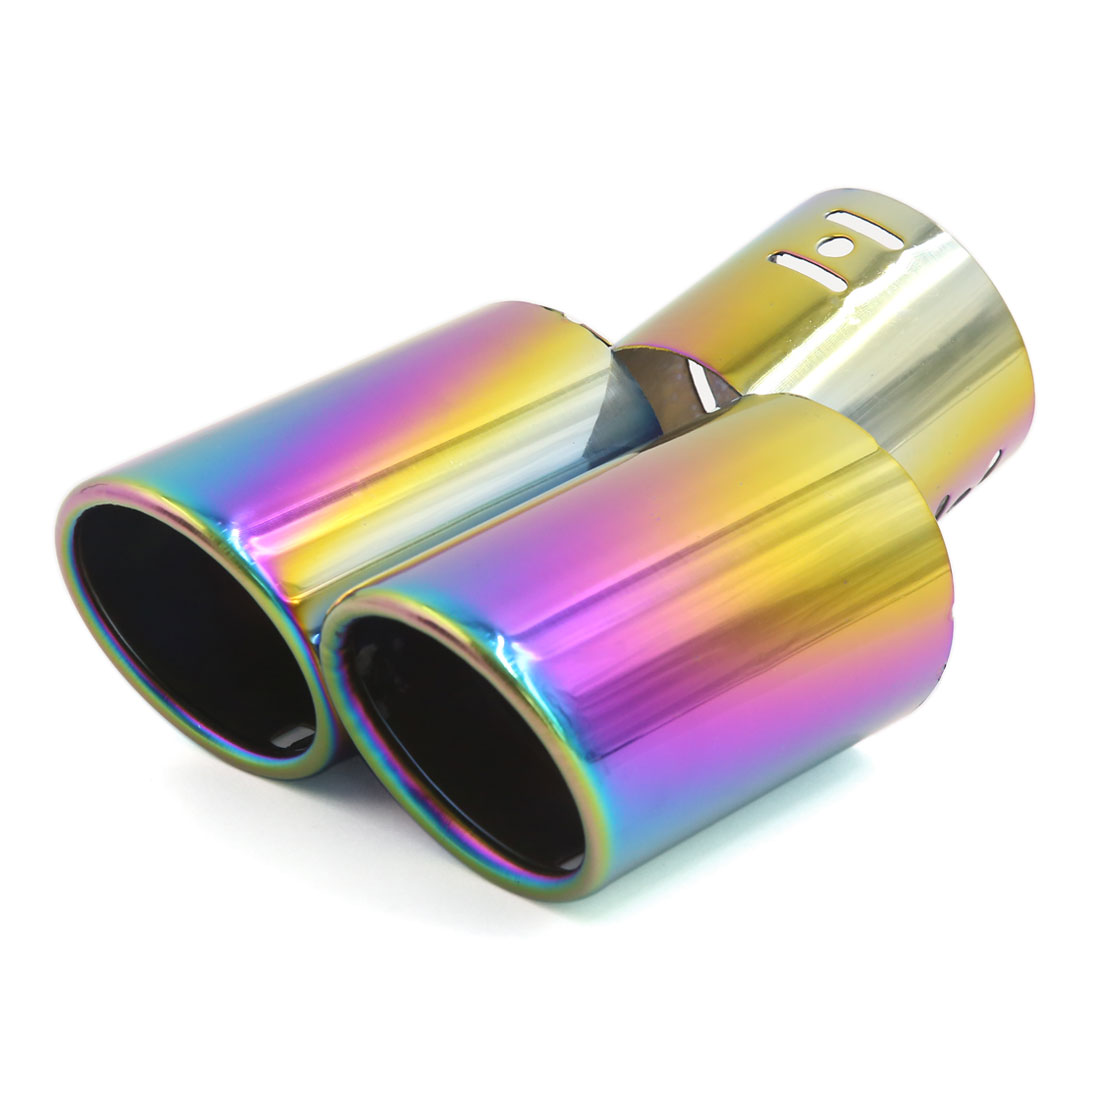 "Car Colorful Double Oval Outlet Exhaust Muffler Trim Tip Y Shape Pipe 2.4"" Inlet"